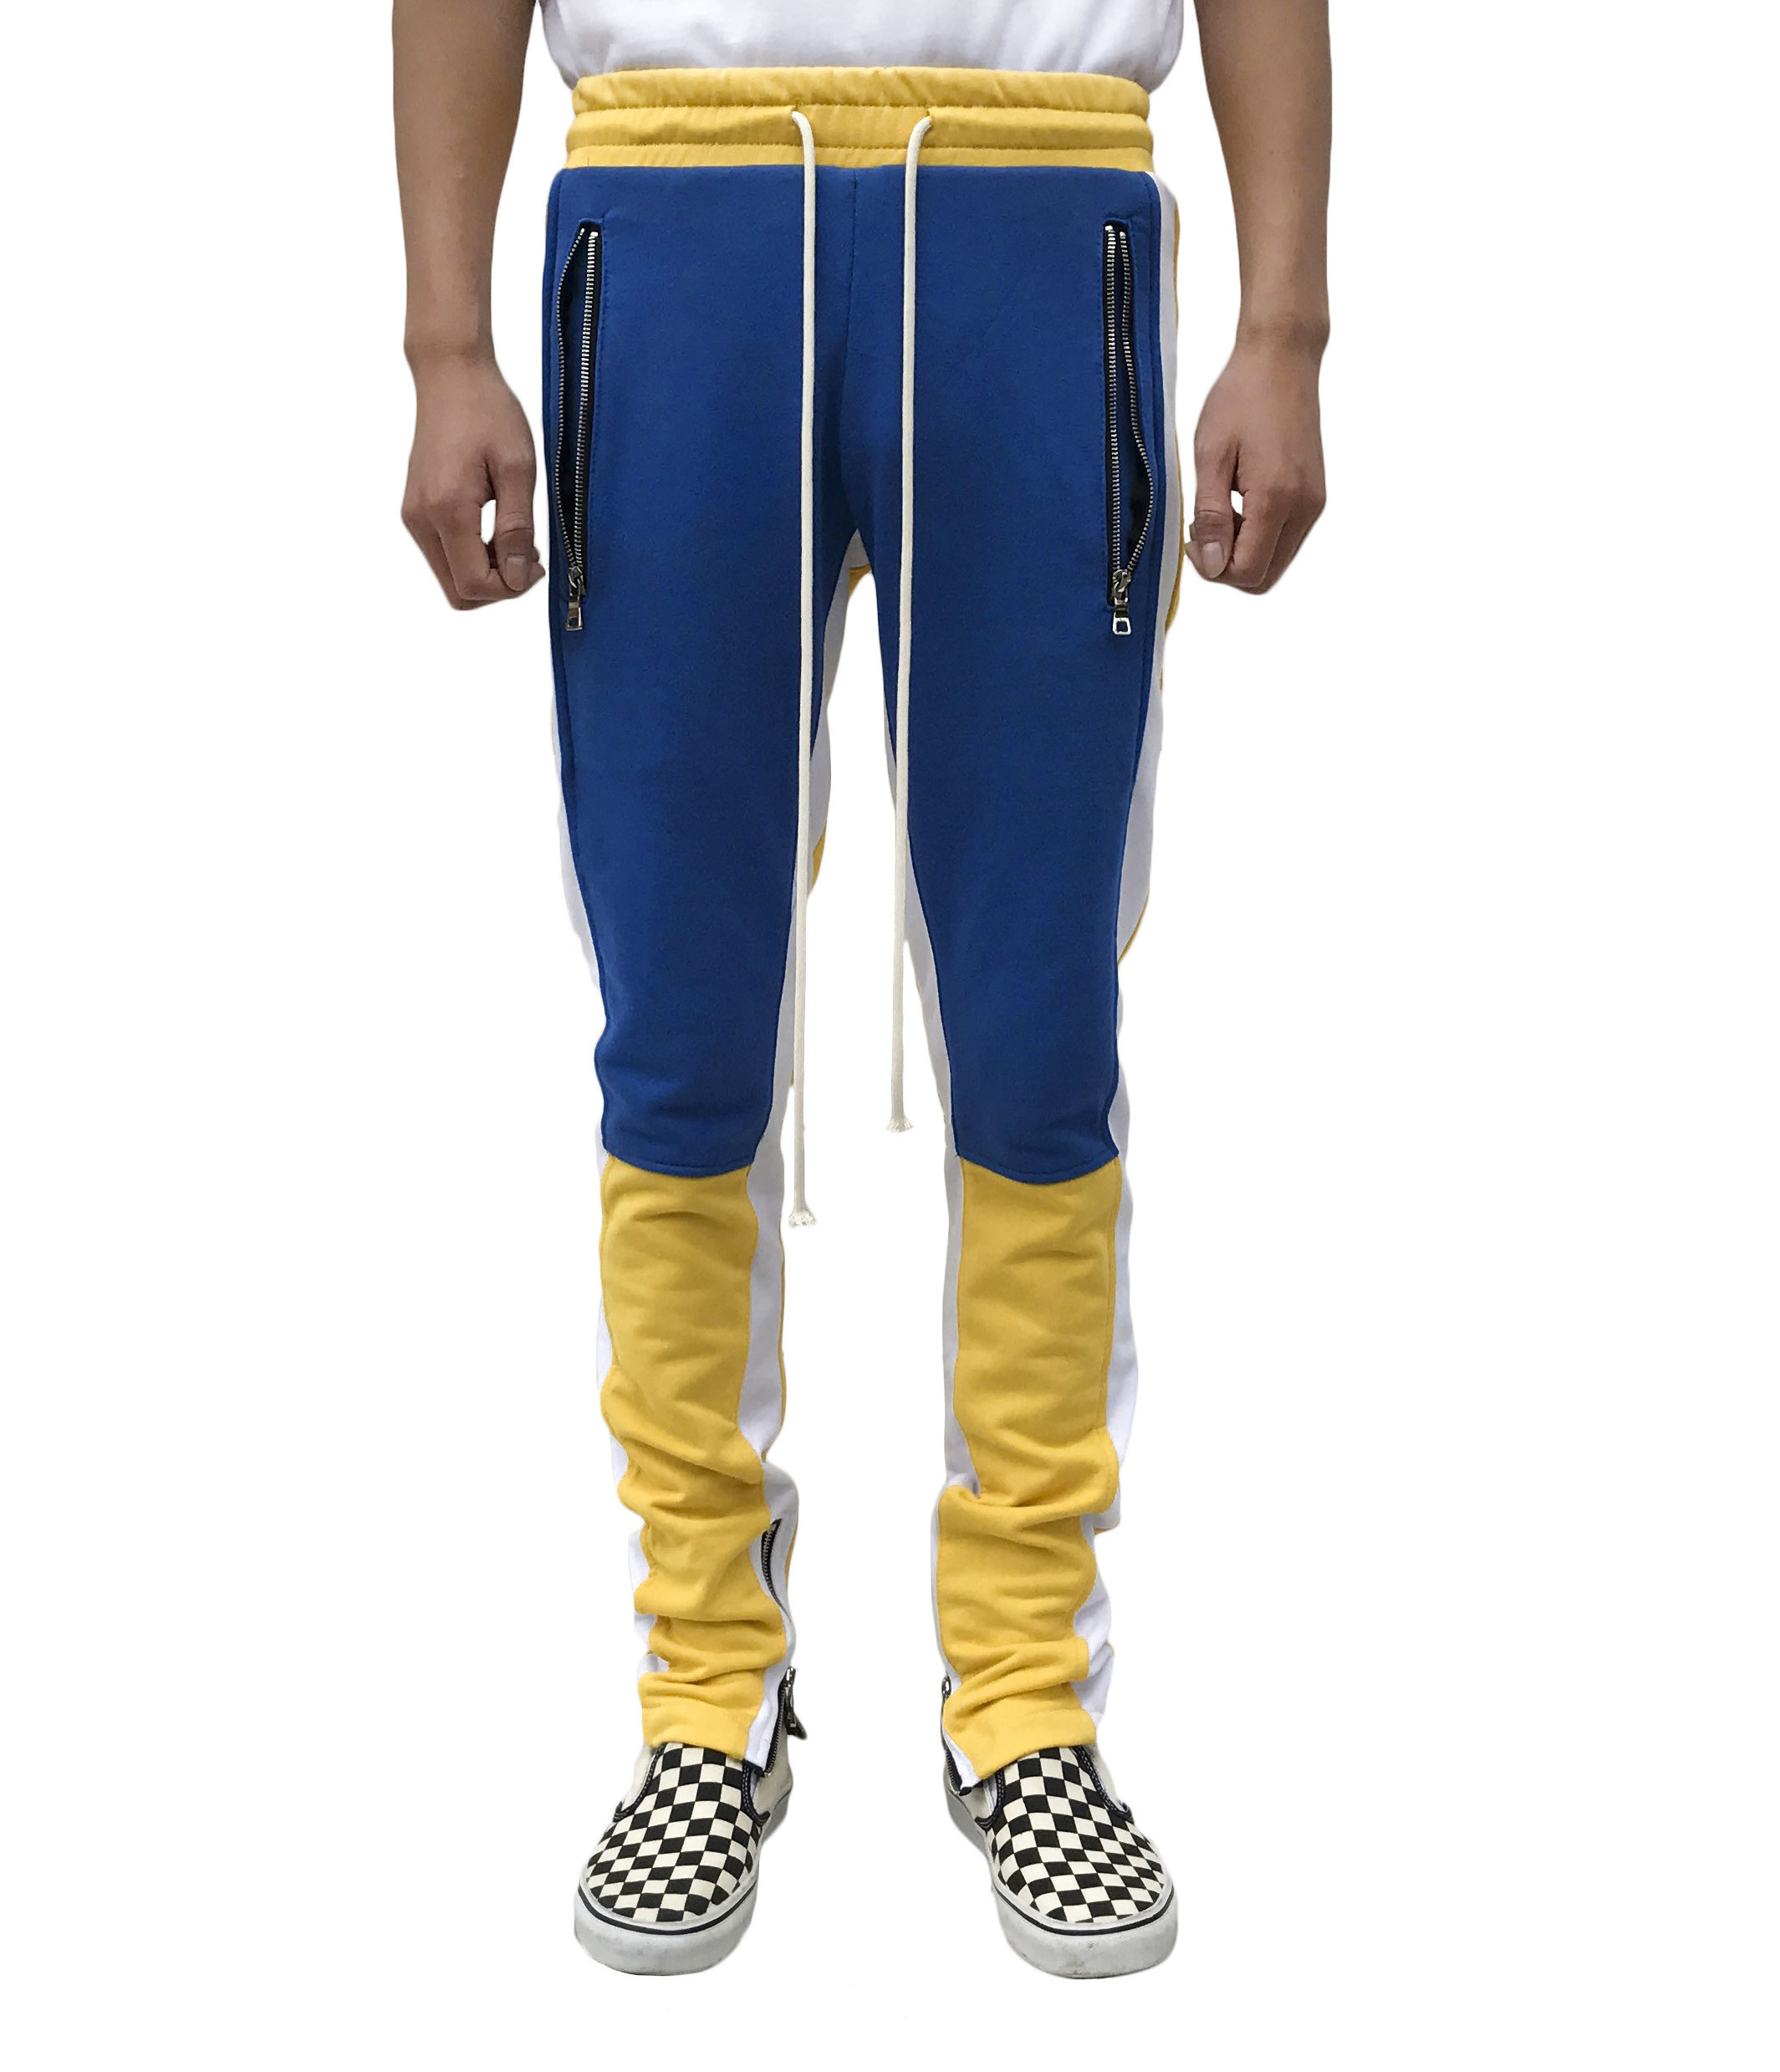 Best And Coolest Motocross Track Pant Yellow Blue For Men Yellow Blue Urkoolwear